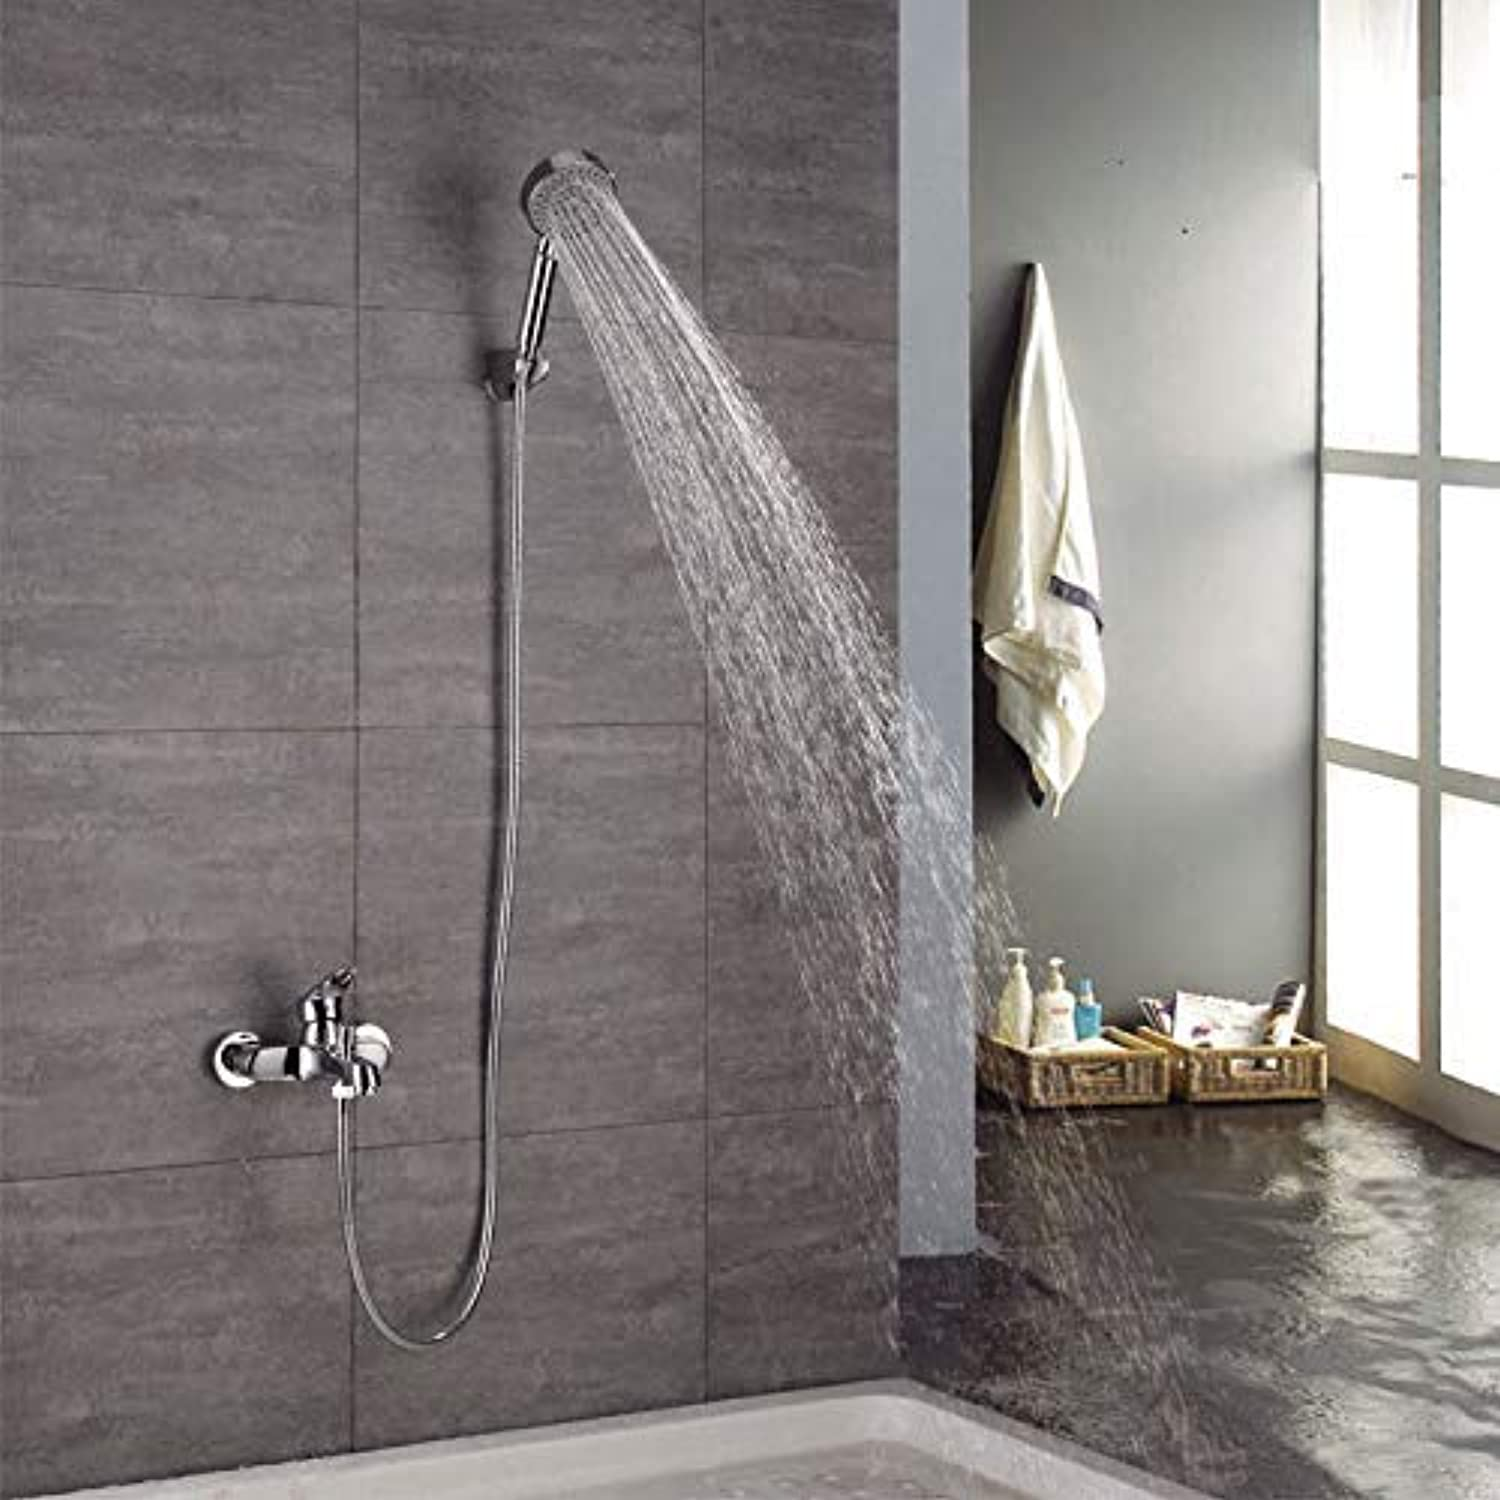 JINSH HOME Showers Shower, Simple Shower, Mixing Valve, Bath, Bathroom Shower, Copper Shower, Shower